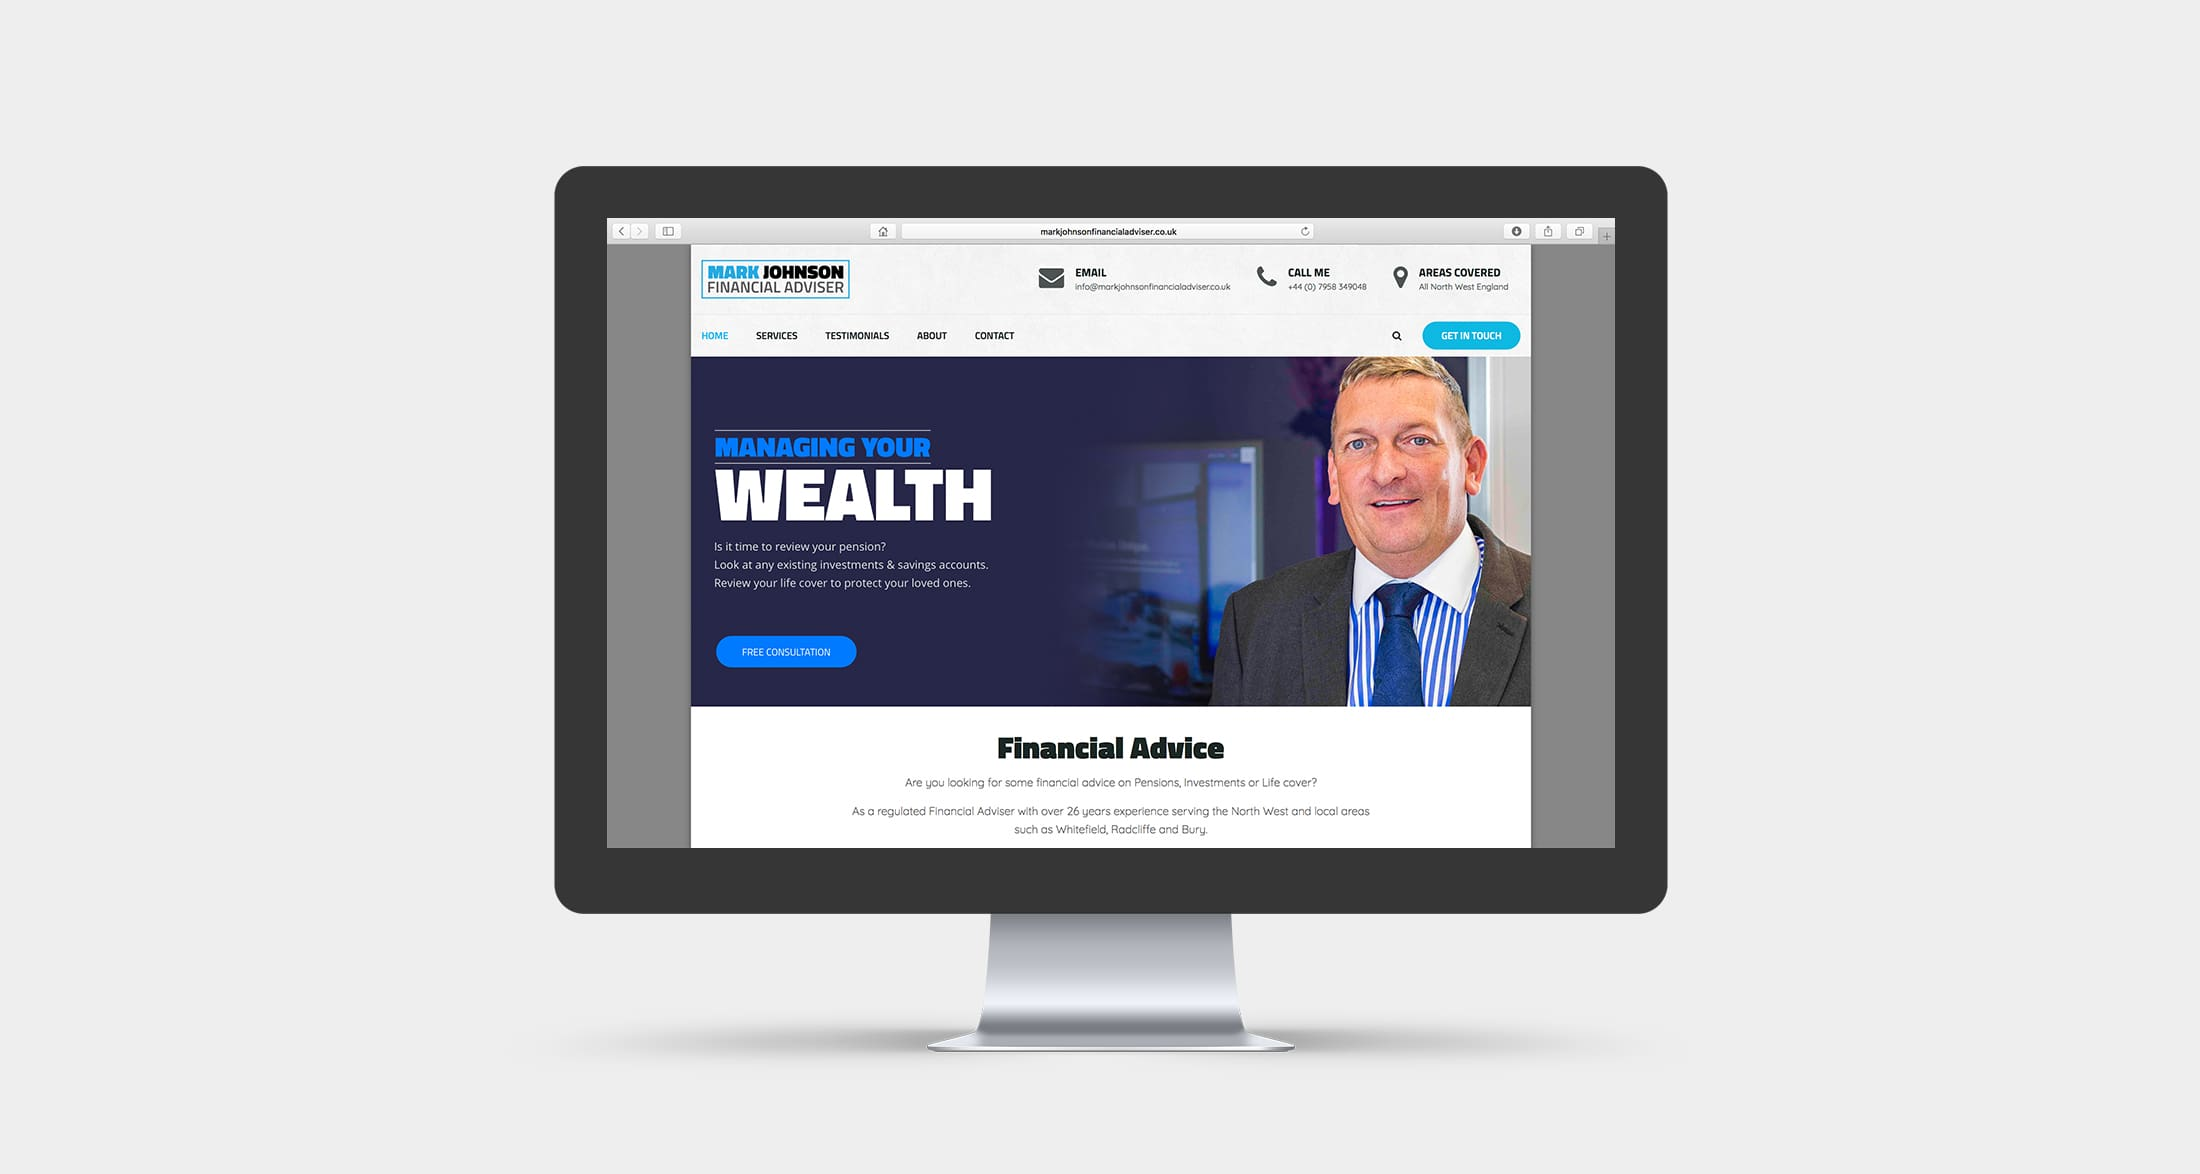 Mark Johnson Financial Adviser